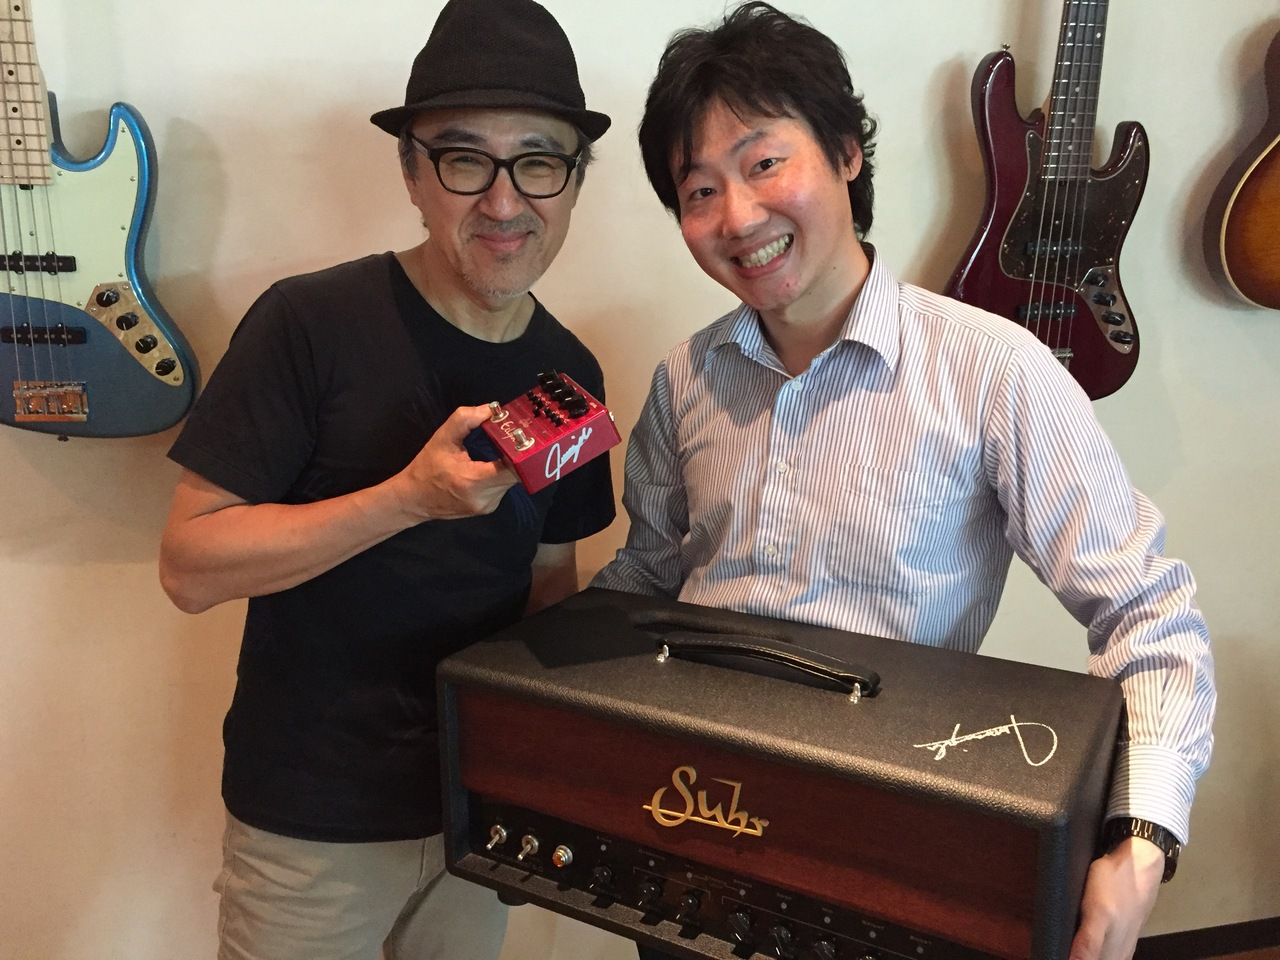 Suhr (regular imports) HEDGEHOG 50Head 1 single limited Takashi Masuzaki's autographed! Your identity Settings image also presents!